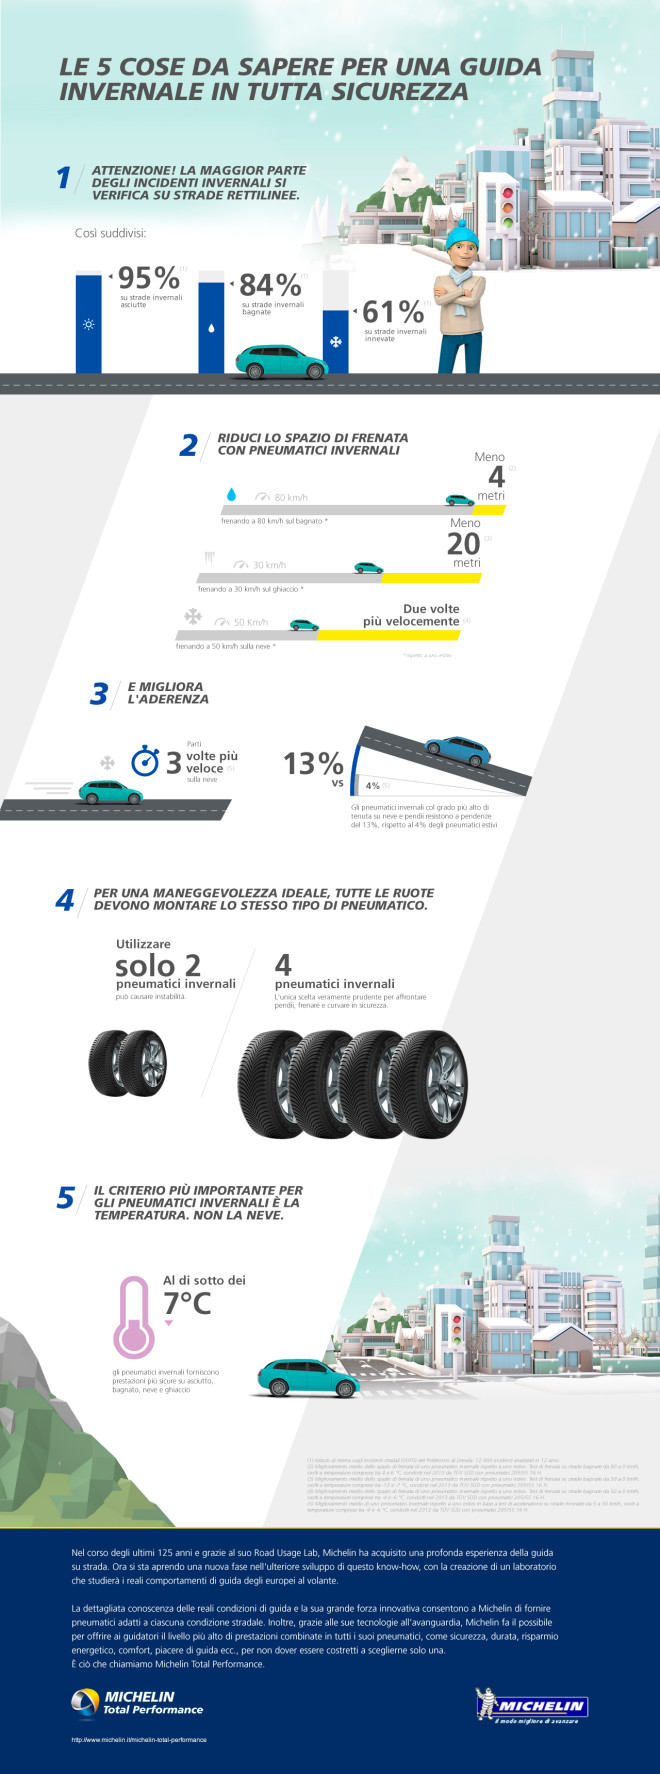 Infographic 5 Things To Drive Safely In Winter